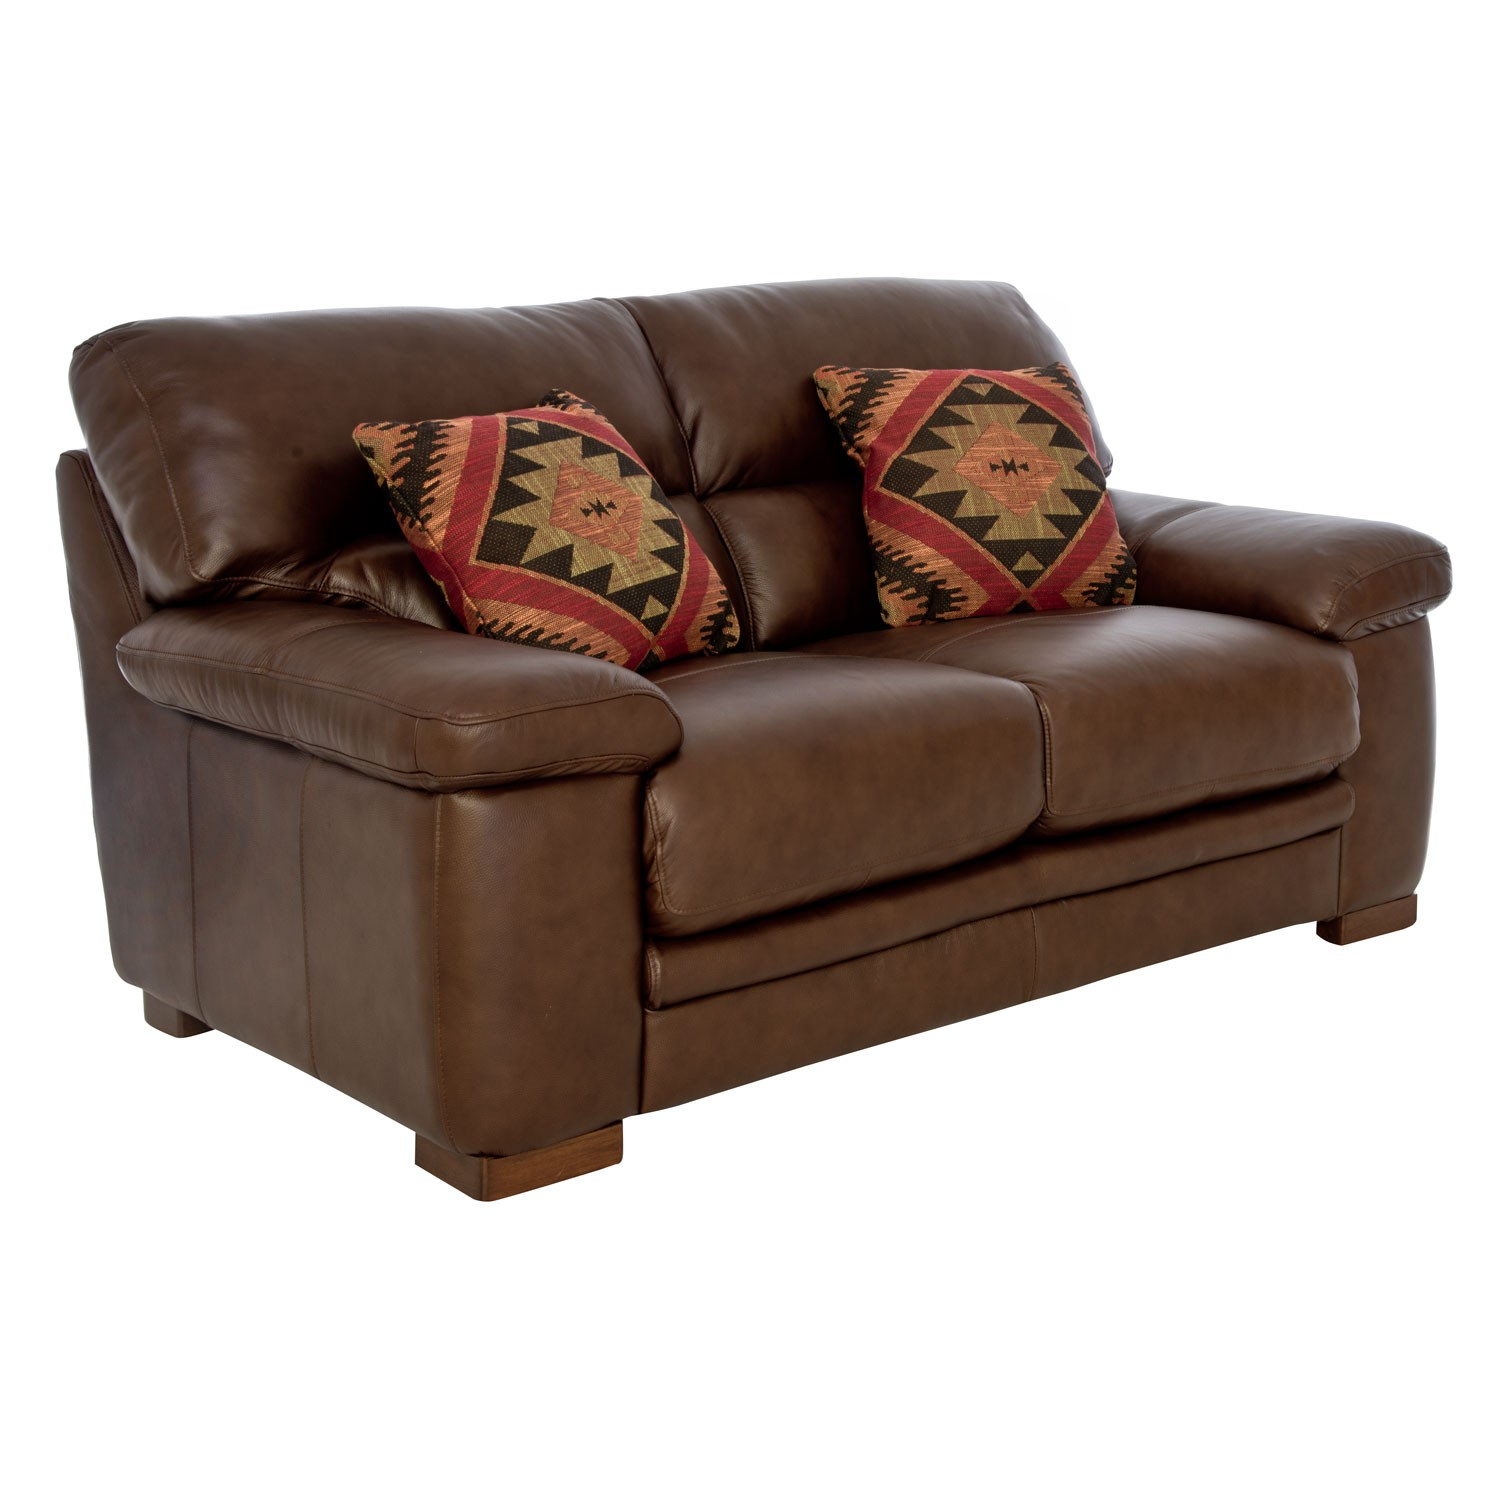 Artemis Two Seater Leather Sofa